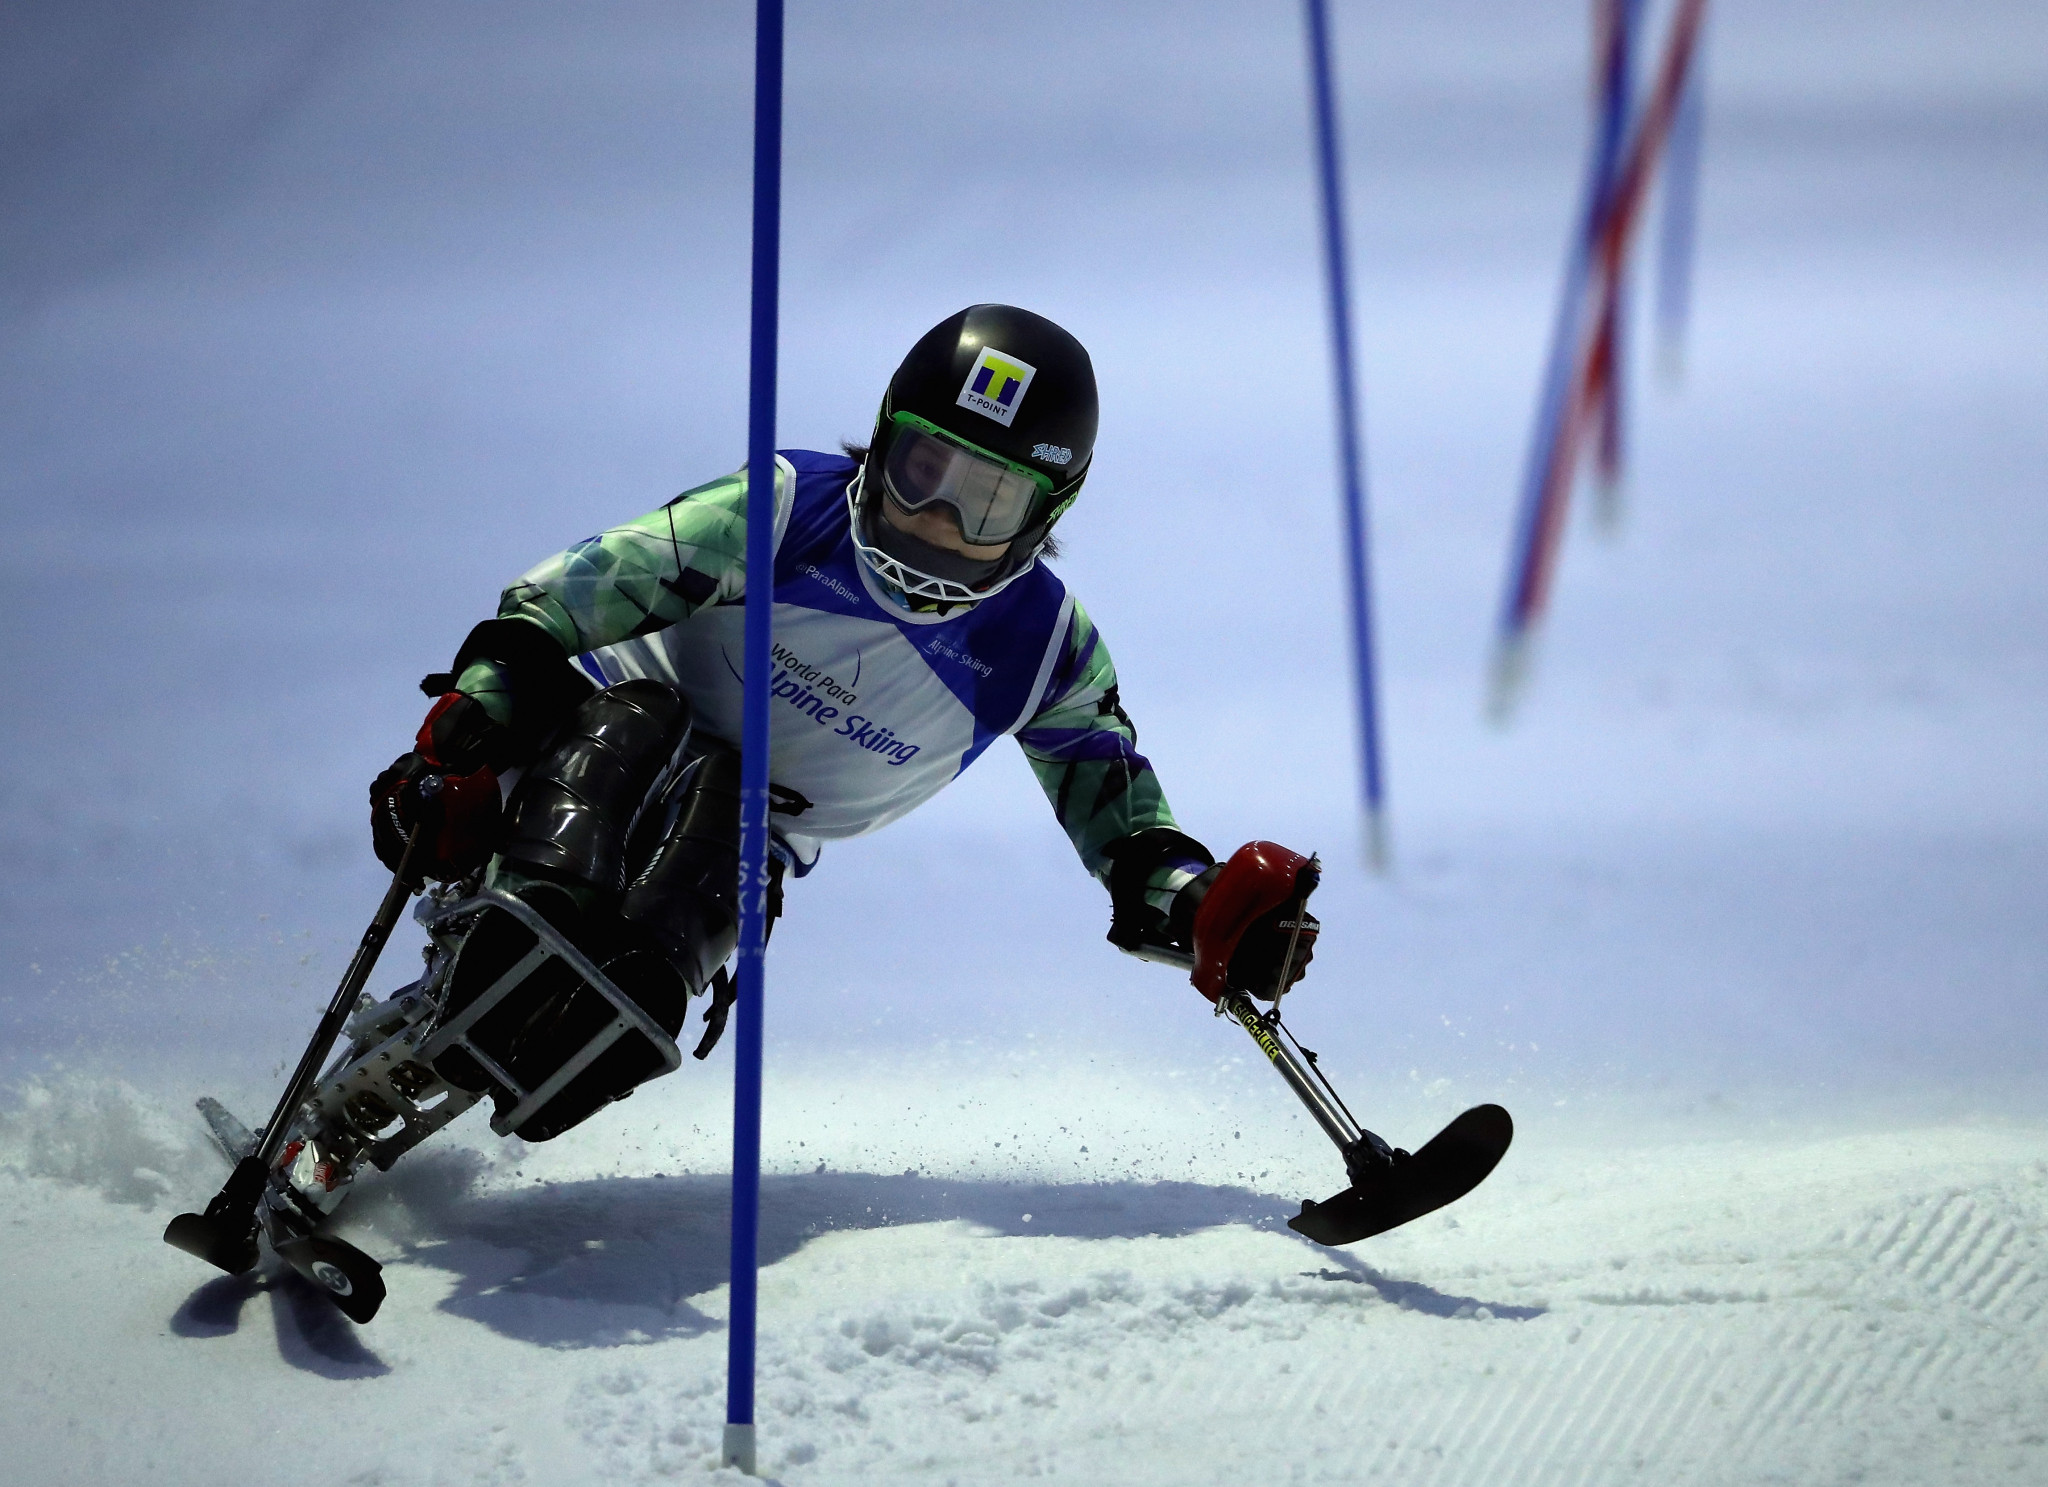 The event is due to bring together Alpine skiing, biathlon, cross-country skiing and snowboard for the first time ©Getty Images